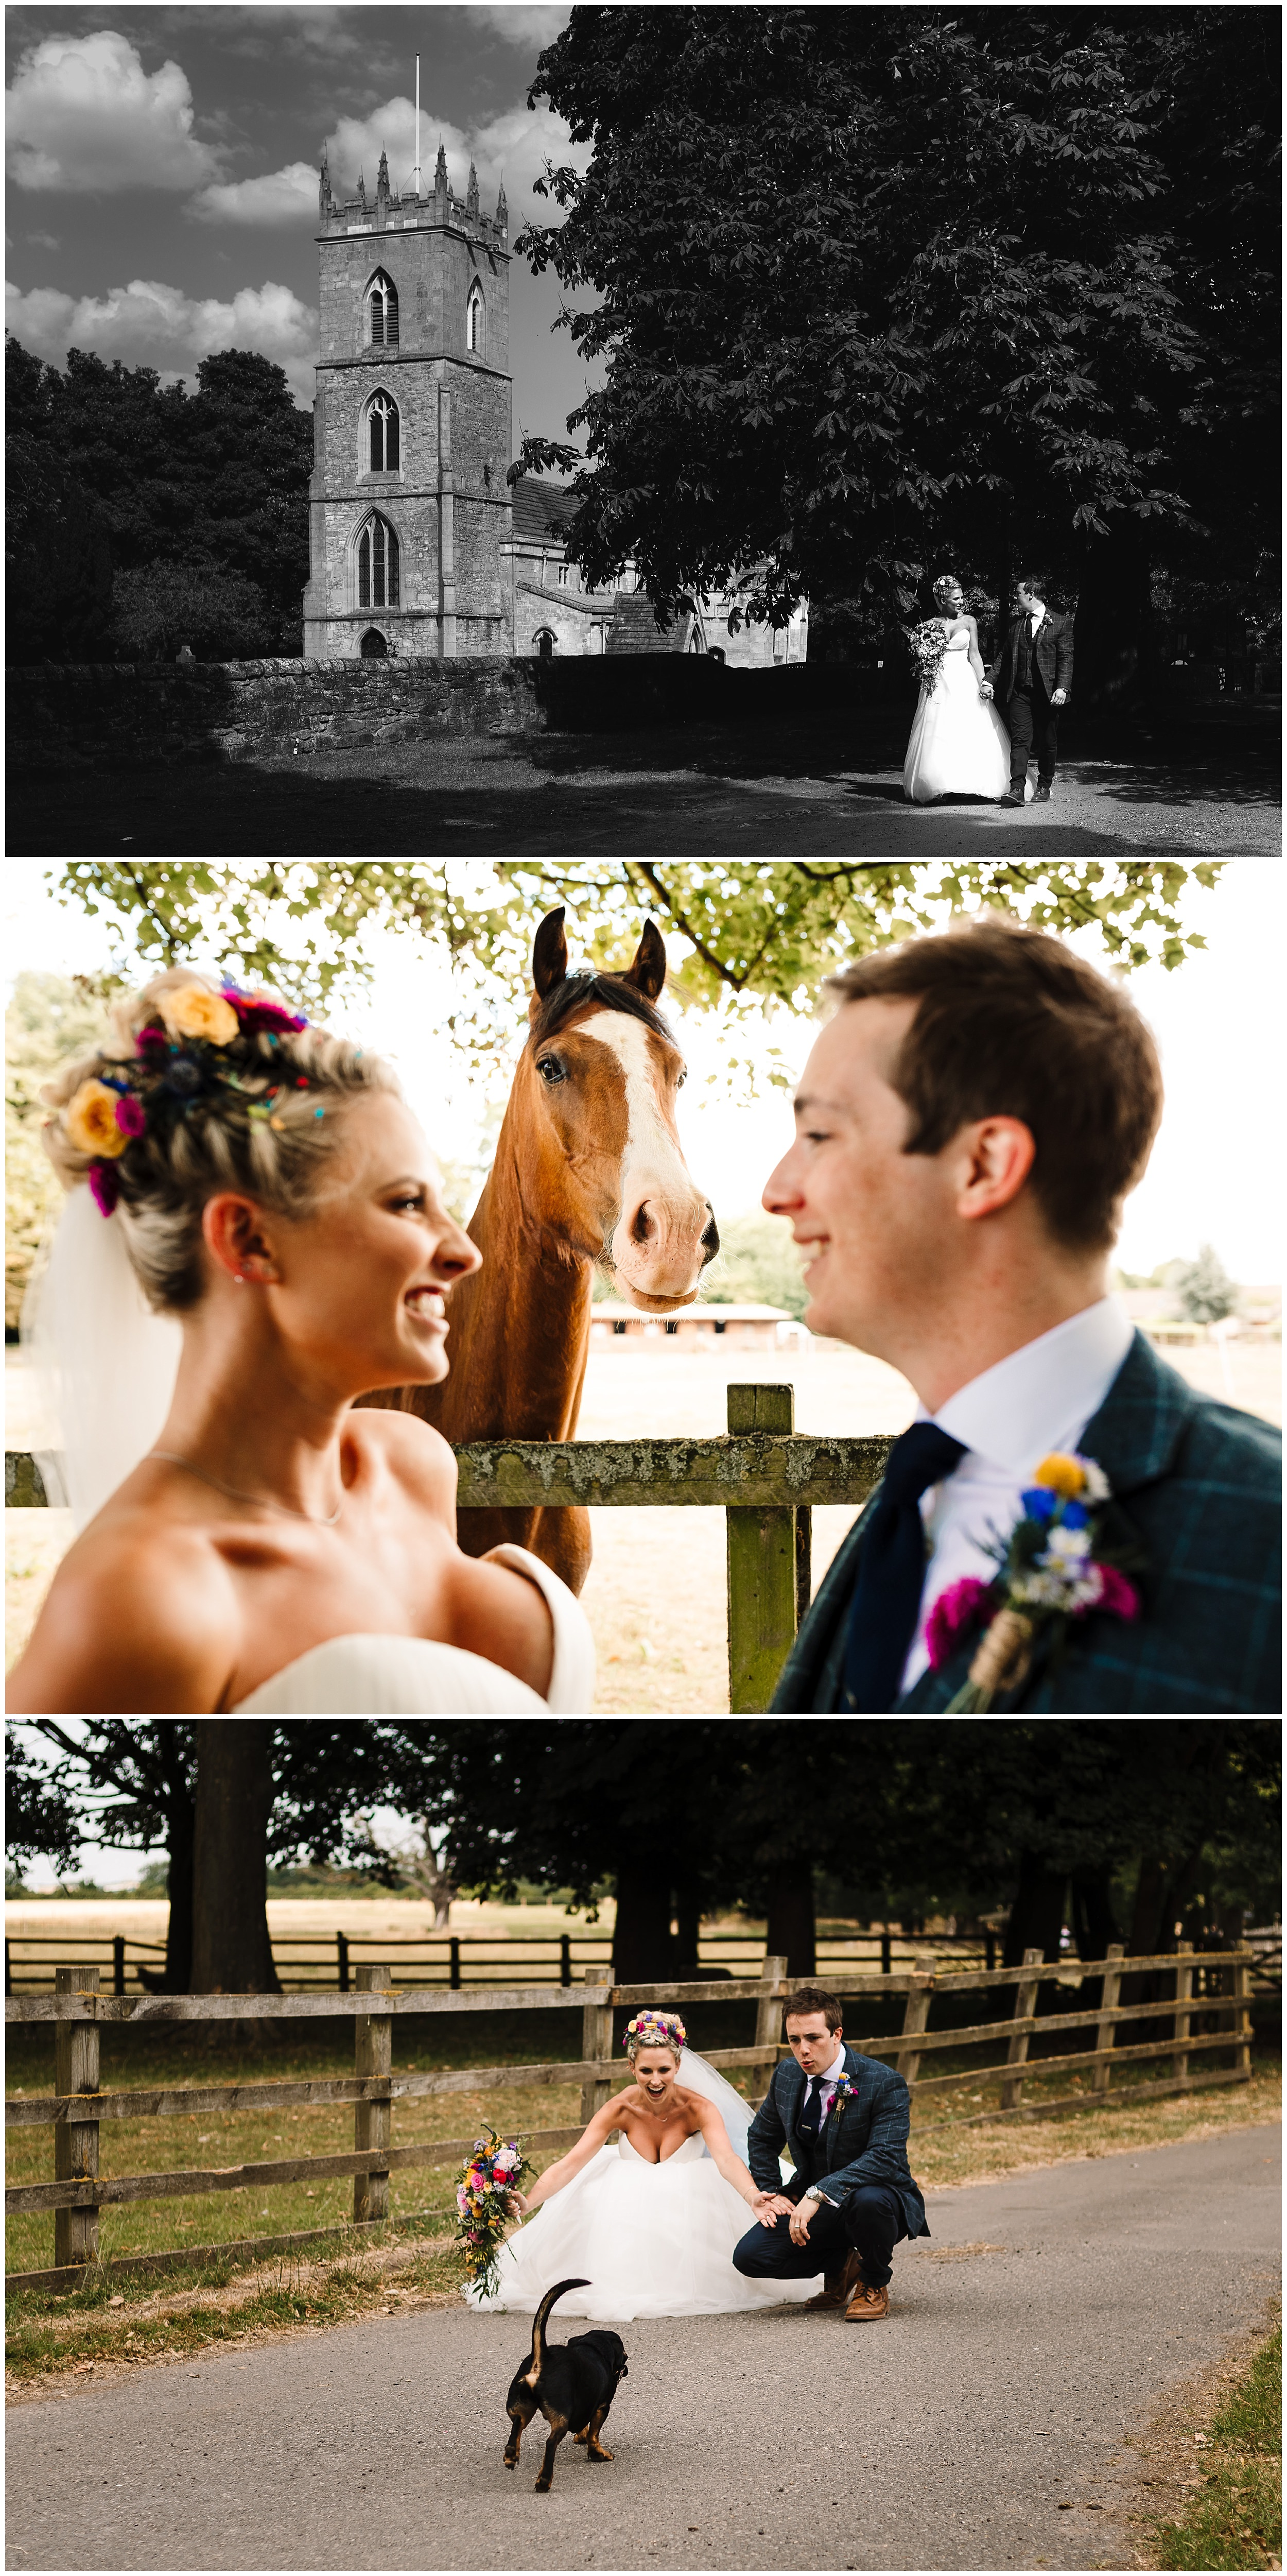 A bride and groom at their wedding at Loversall Farm in Doncaster